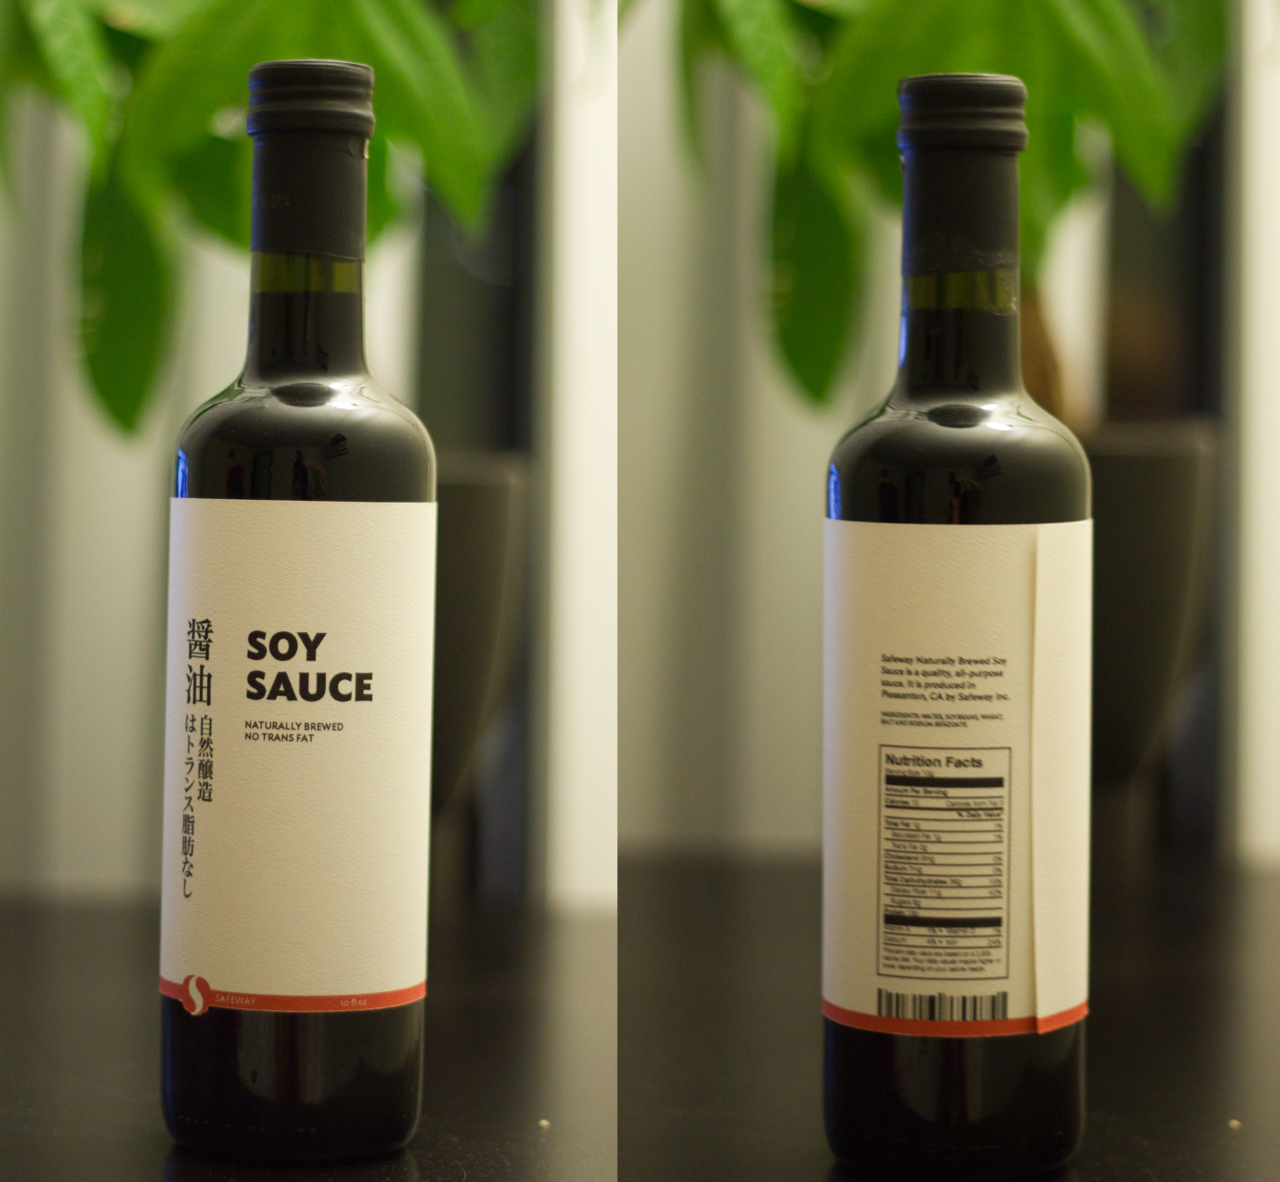 I'm also taking a Packaging Design class, in which my first project was to redesign a Soy Sauce bottle. This is my design—I'm going for a very clean and authentic style, featuring the Safeway house brand.